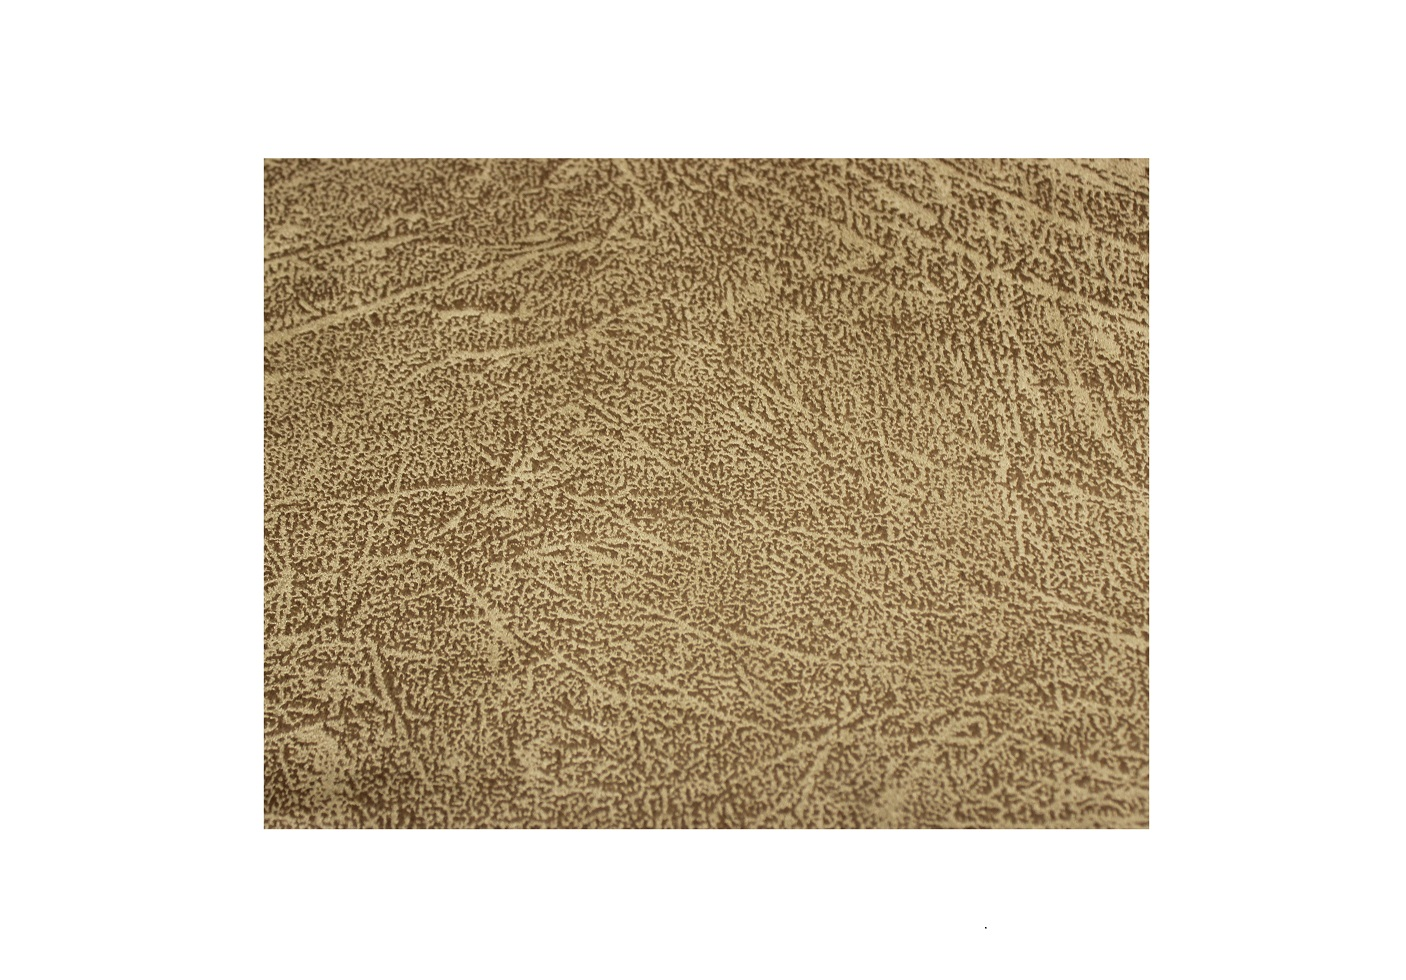 Toro taupe wall vinyl 50 yards jazz sales - Wall taupe ...